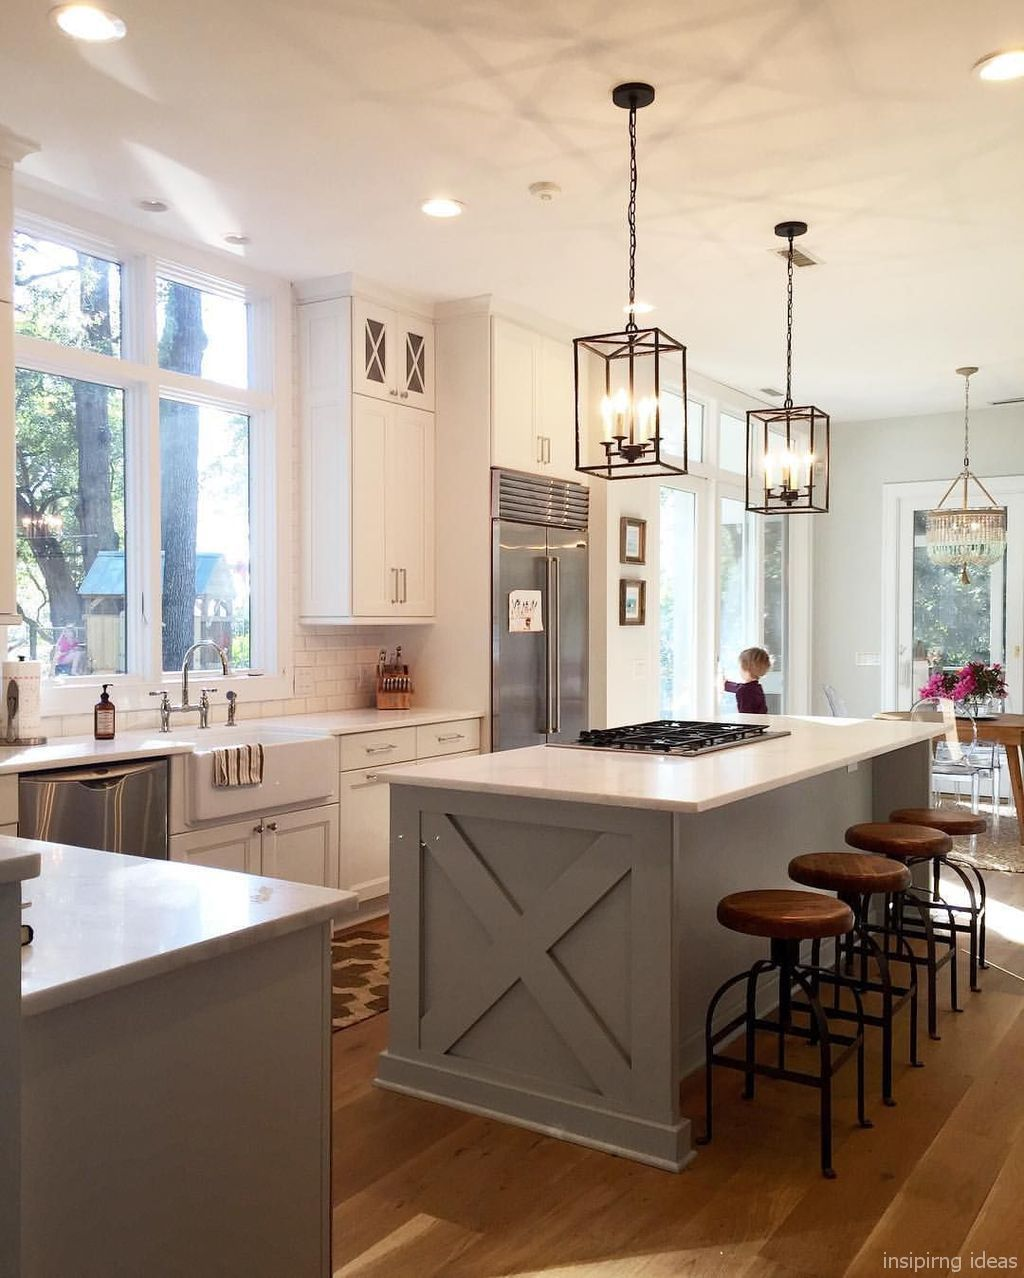 Modern Farmhouse Track Lighting 43 Incredible Modern Farmhouse Kitchen Cabinets Ideas In 2019